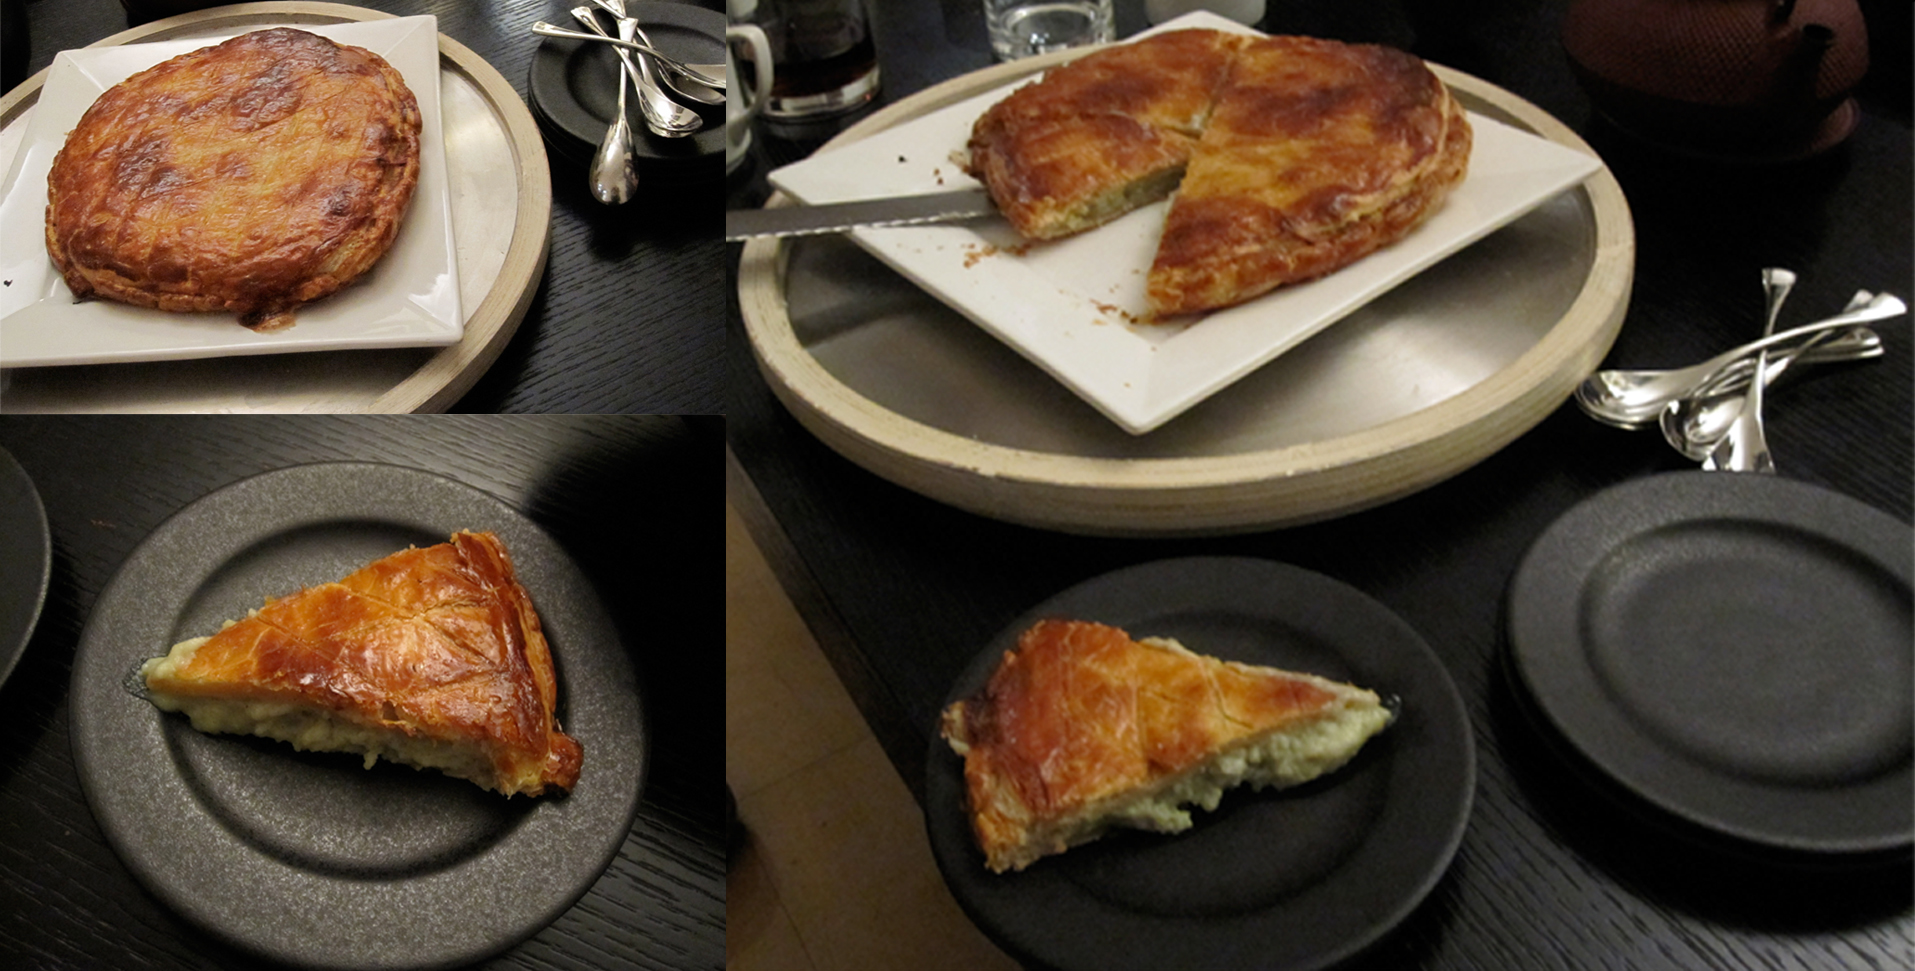 Happy new year and happy galette des rois friends in - Galette des rois image ...